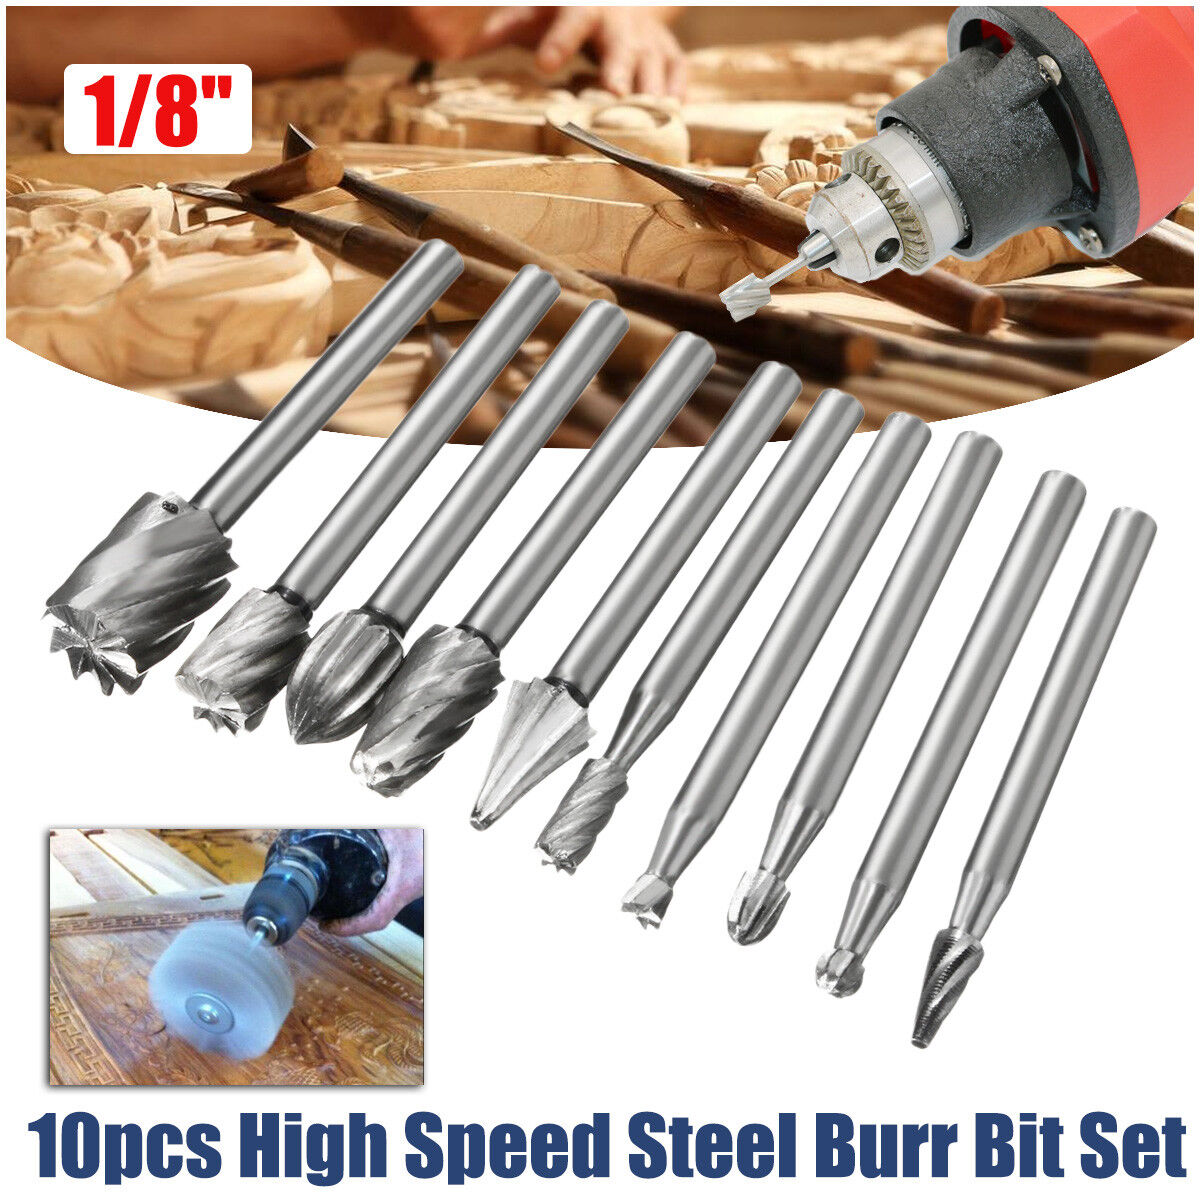 10pc hss foret forage perceuse rev tu drill bit fraises pour dremel 1 8 eur 3 70 picclick fr. Black Bedroom Furniture Sets. Home Design Ideas